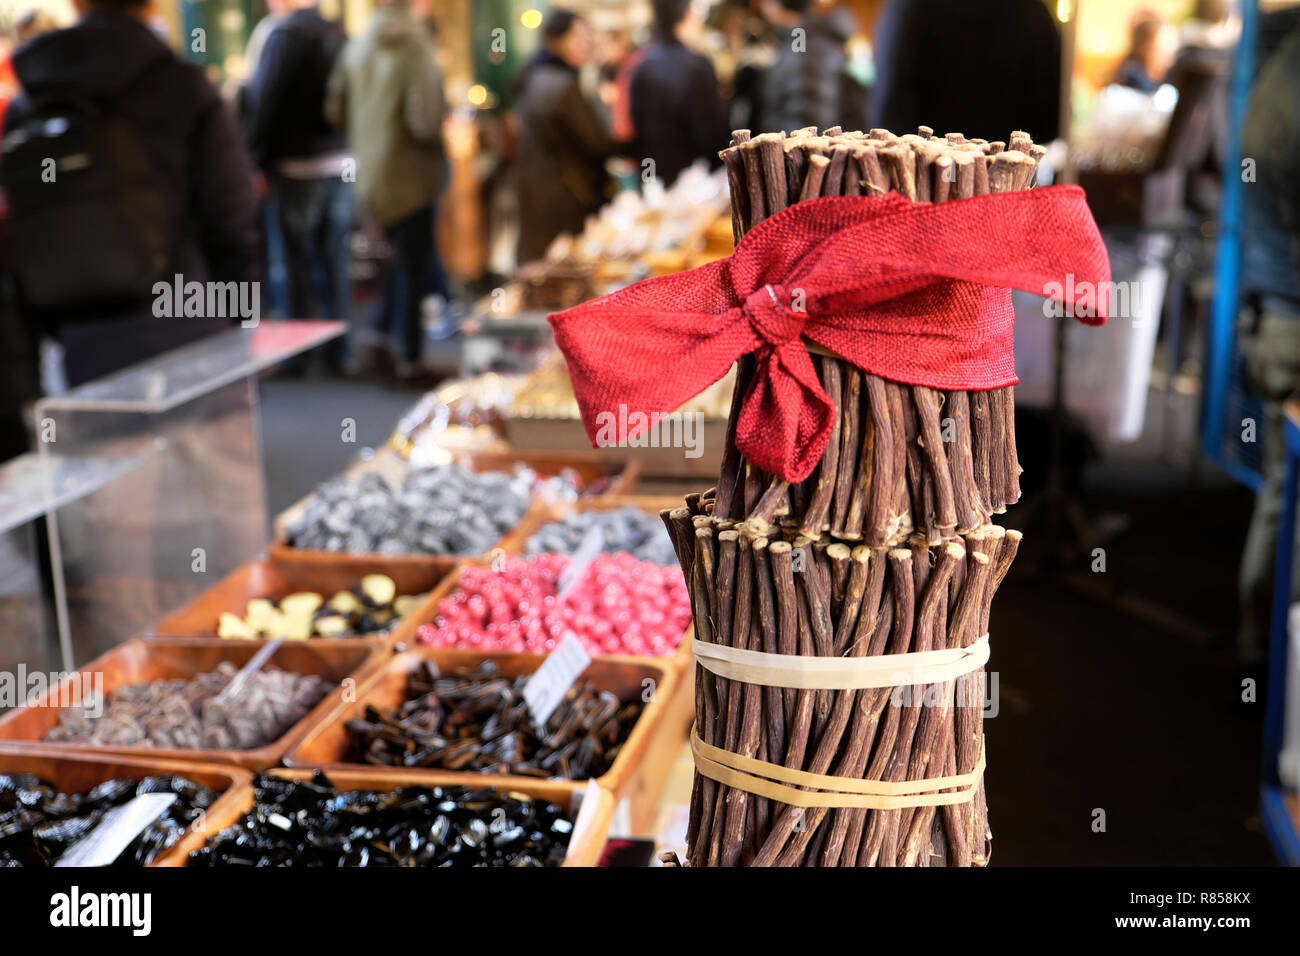 Borough Market Christmas raw liquorice sticks (licorice) Glycyrrhiza glabra with a red Christmas bow on sweets stall London England UK   KATHY DEWITT - Stock Image